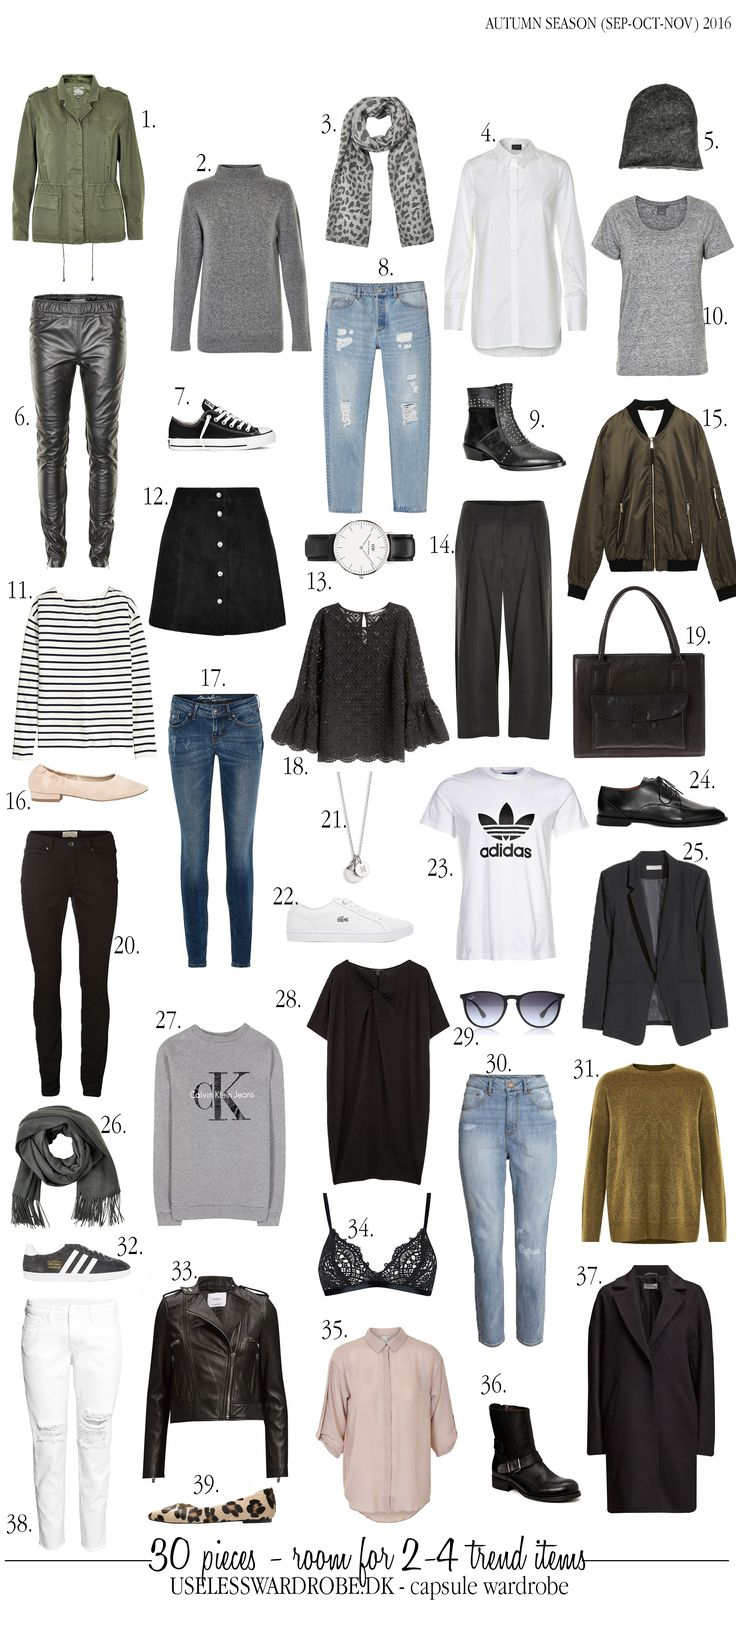 Fall Capsule Wardrobe From H M: Best 25+ Fall Capsule Ideas On Pinterest